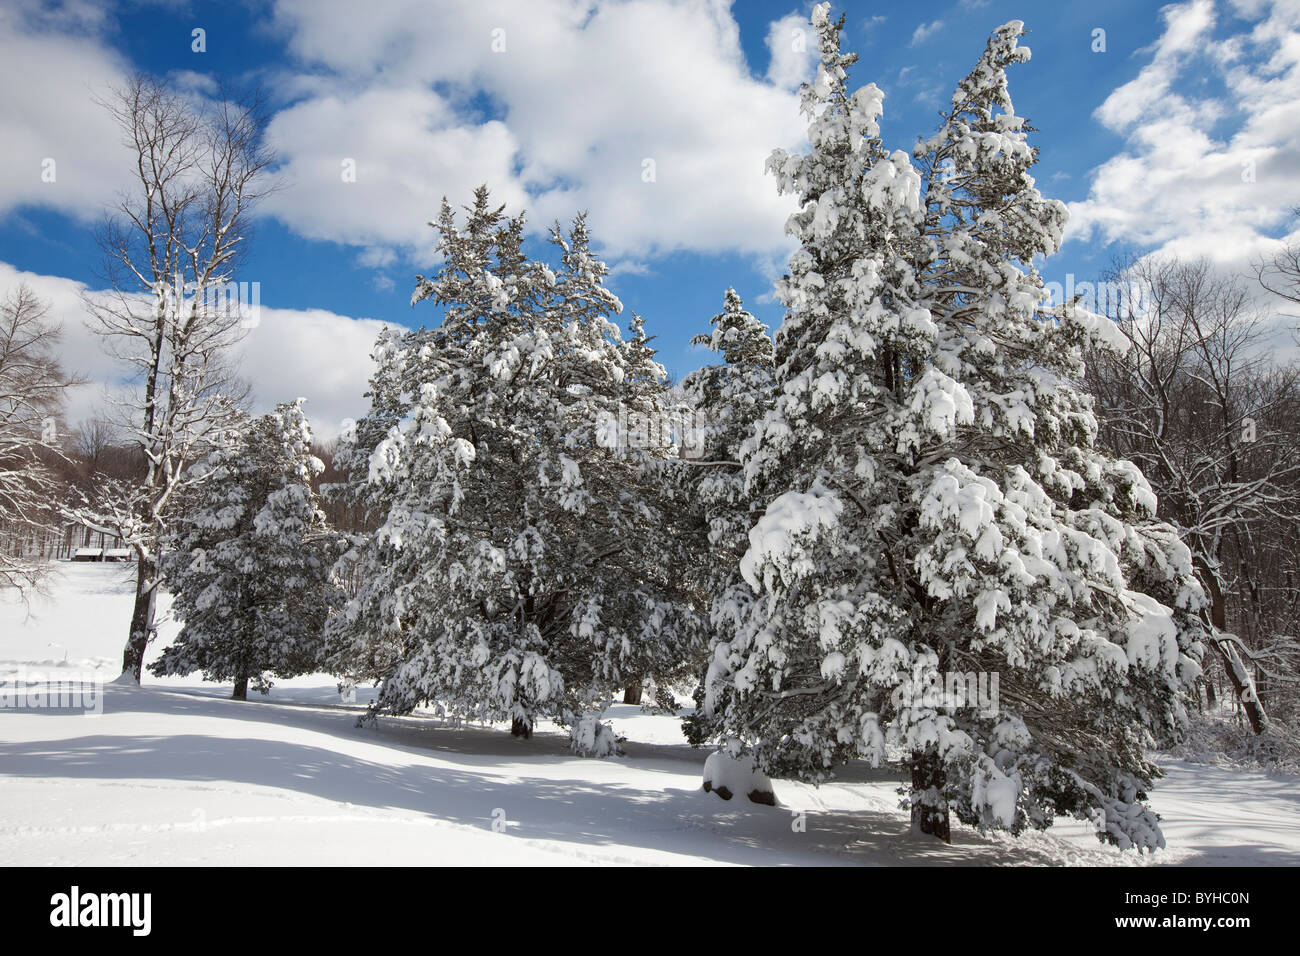 Snow covered pine trees, Jockey Hollow, Morristown National Historical Park, New Jersey - Stock Image